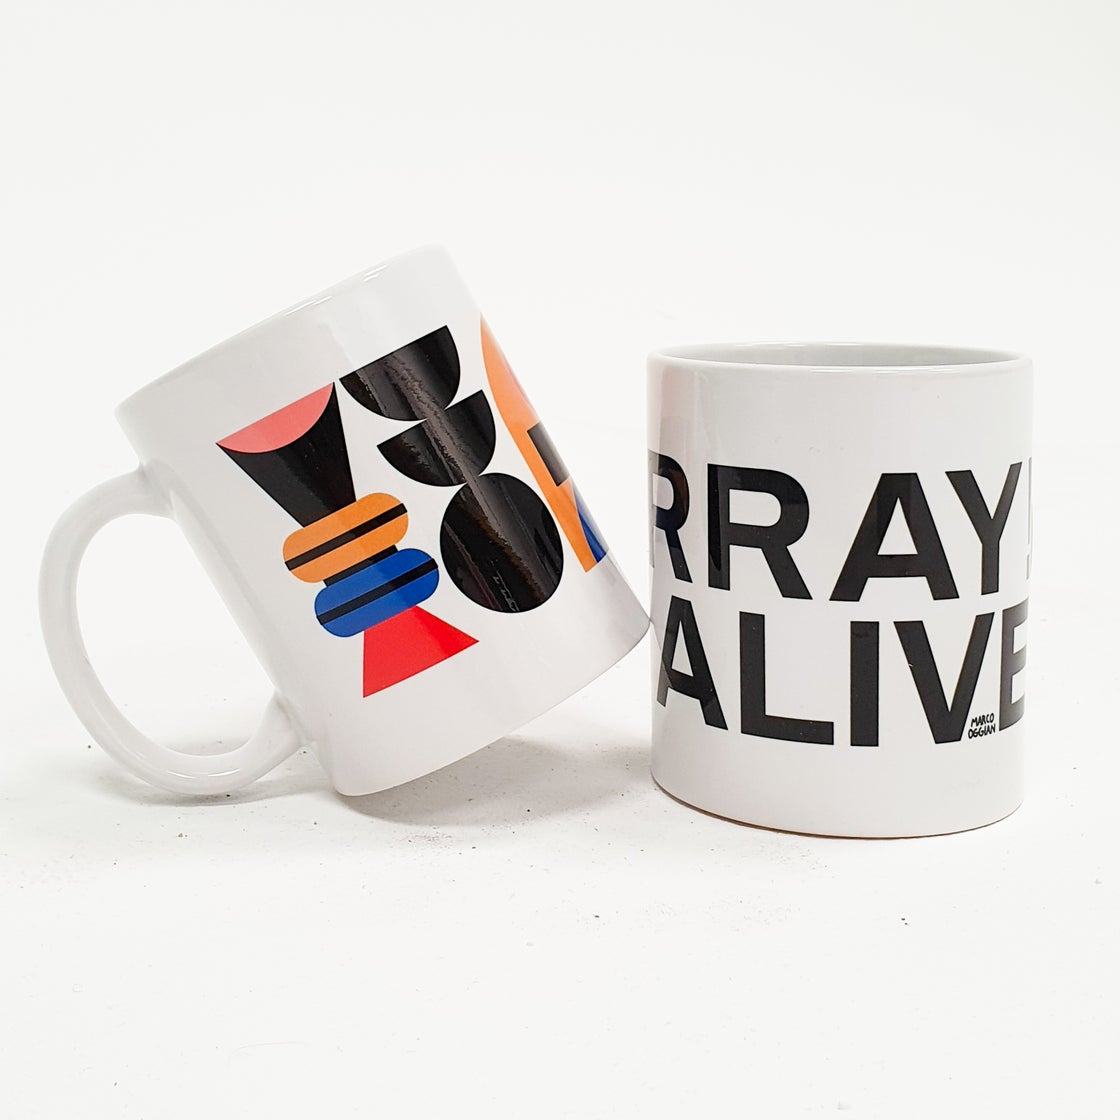 Image of HURRAY! I'M ALIVE Mugs by Marco Oggian